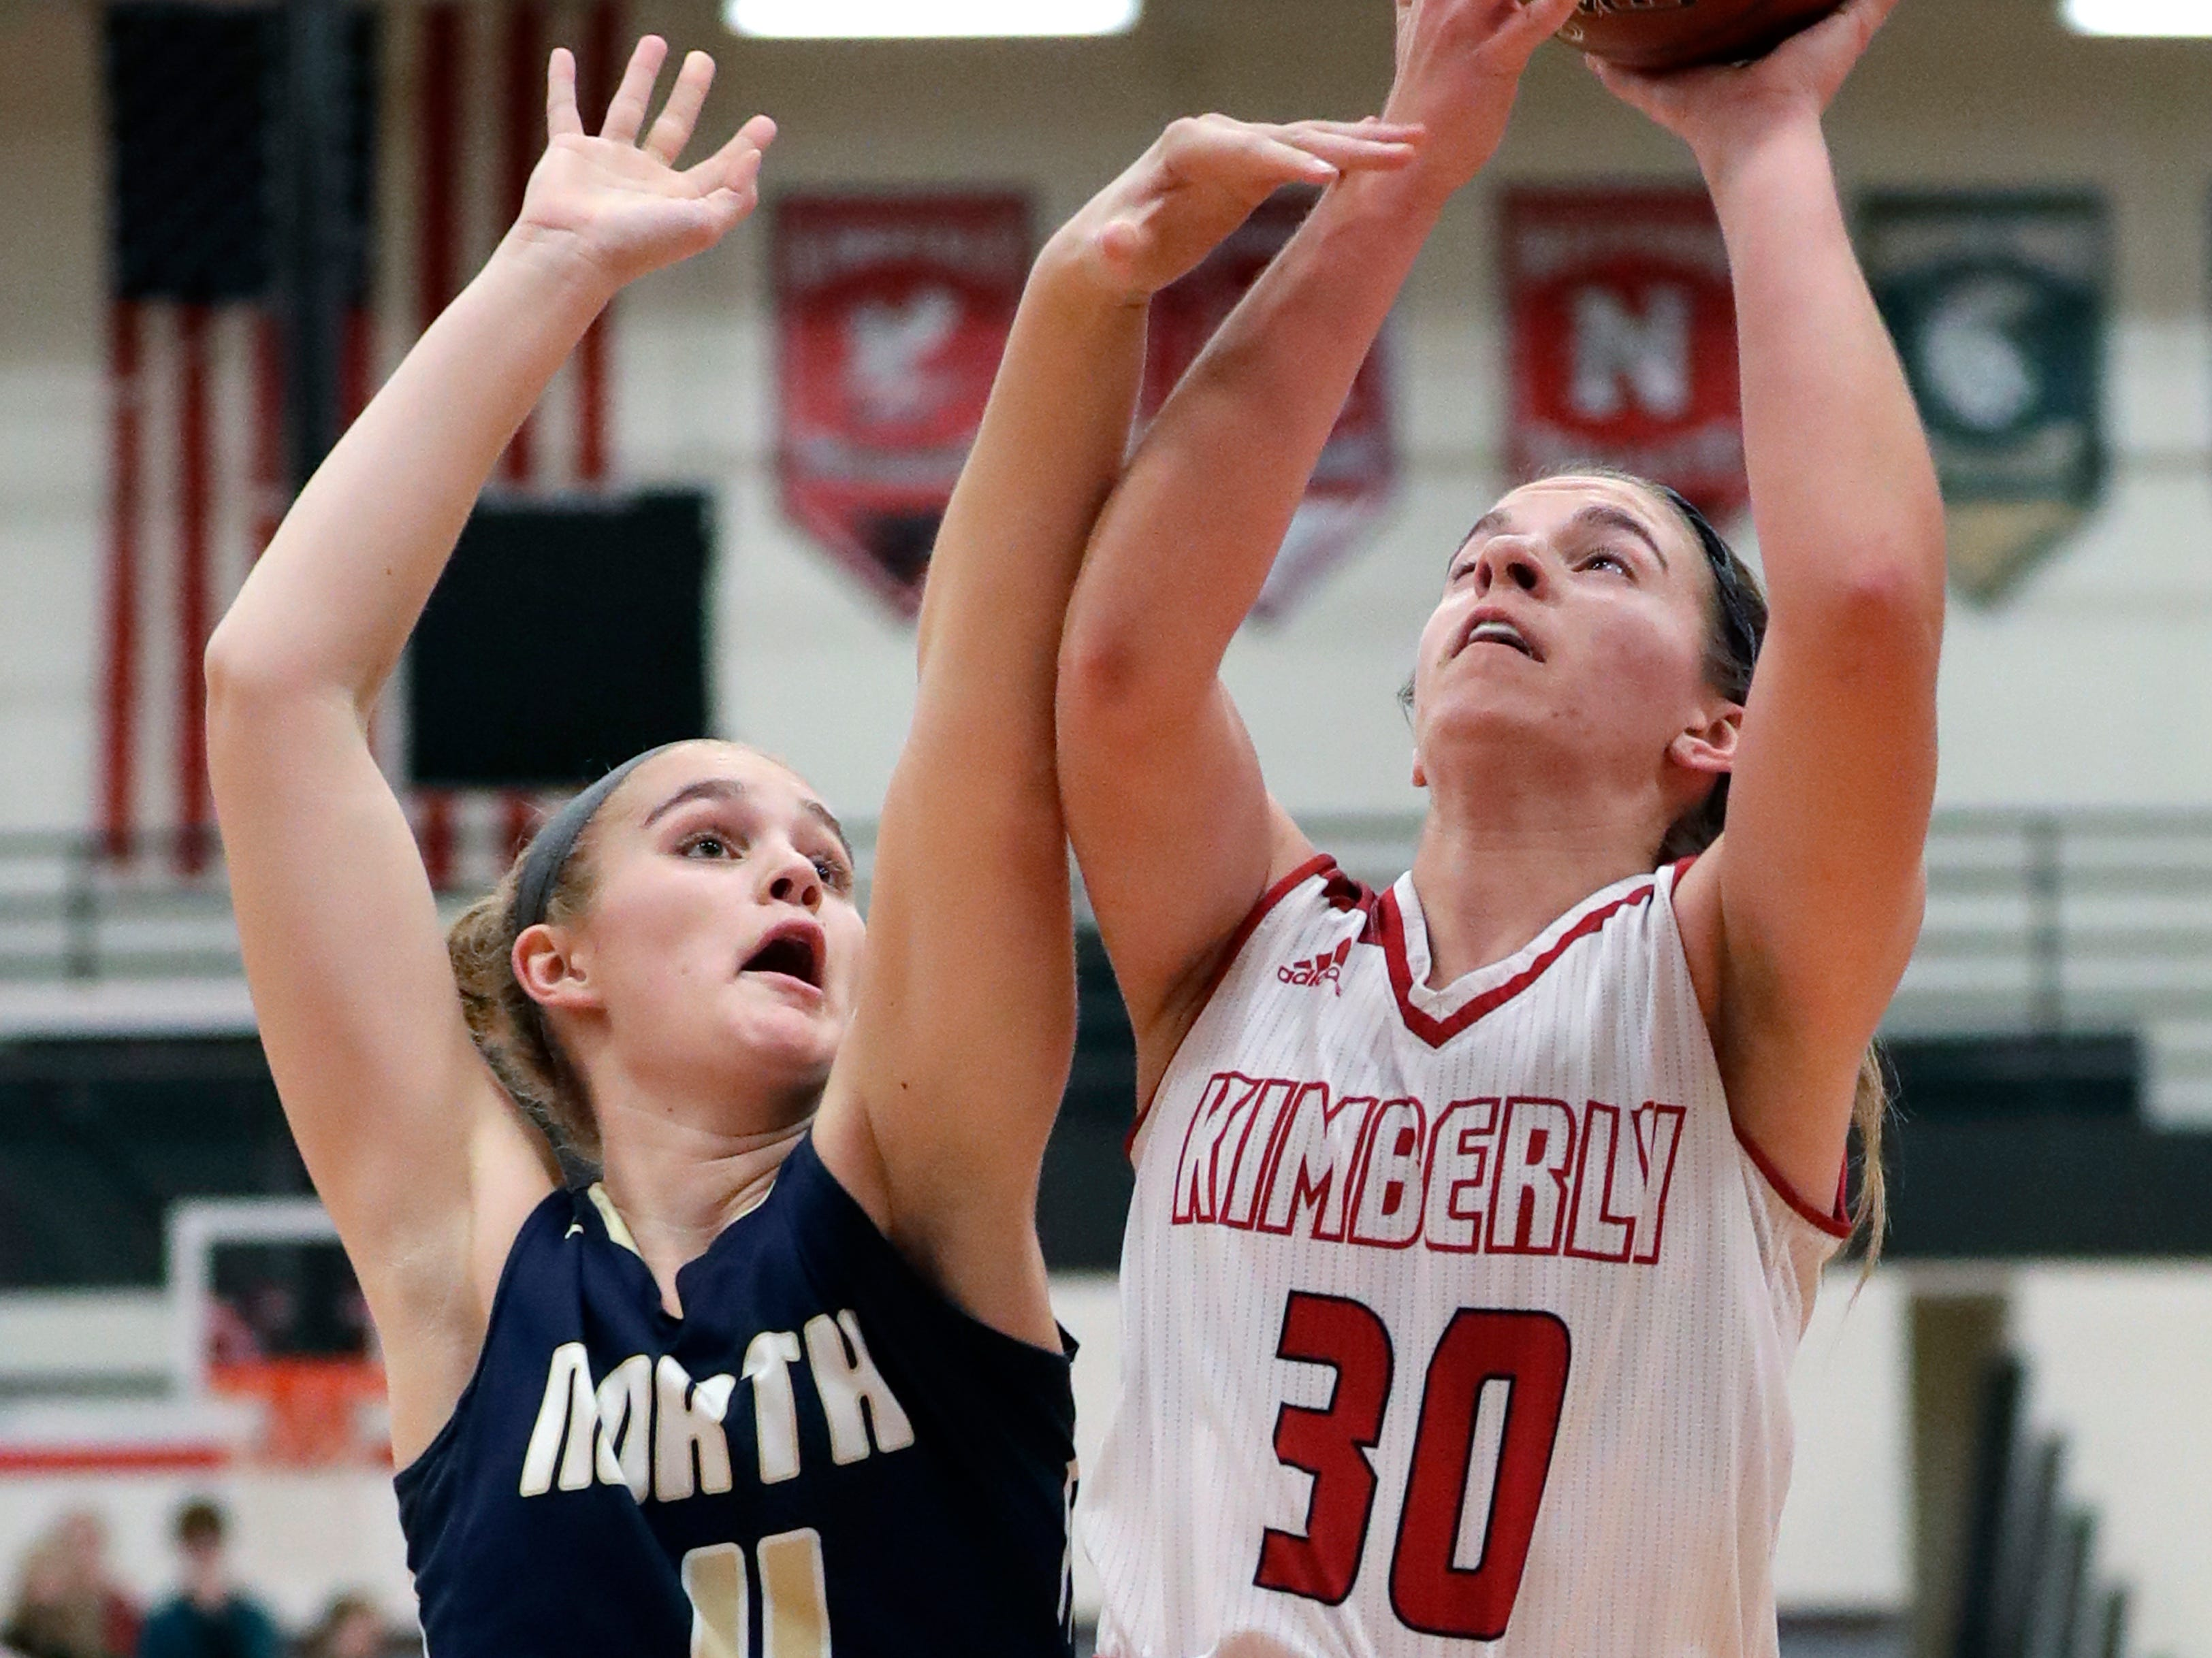 Kimberly High School's Marissa Murray (30) is fouled as she puts up a shot against Appleton North High School's Emma Erickson (11) during their girls basketball game Monday, February 11, 2019, in Kimberly, Wis. Dan Powers/USA TODAY NETWORK-Wisconsin